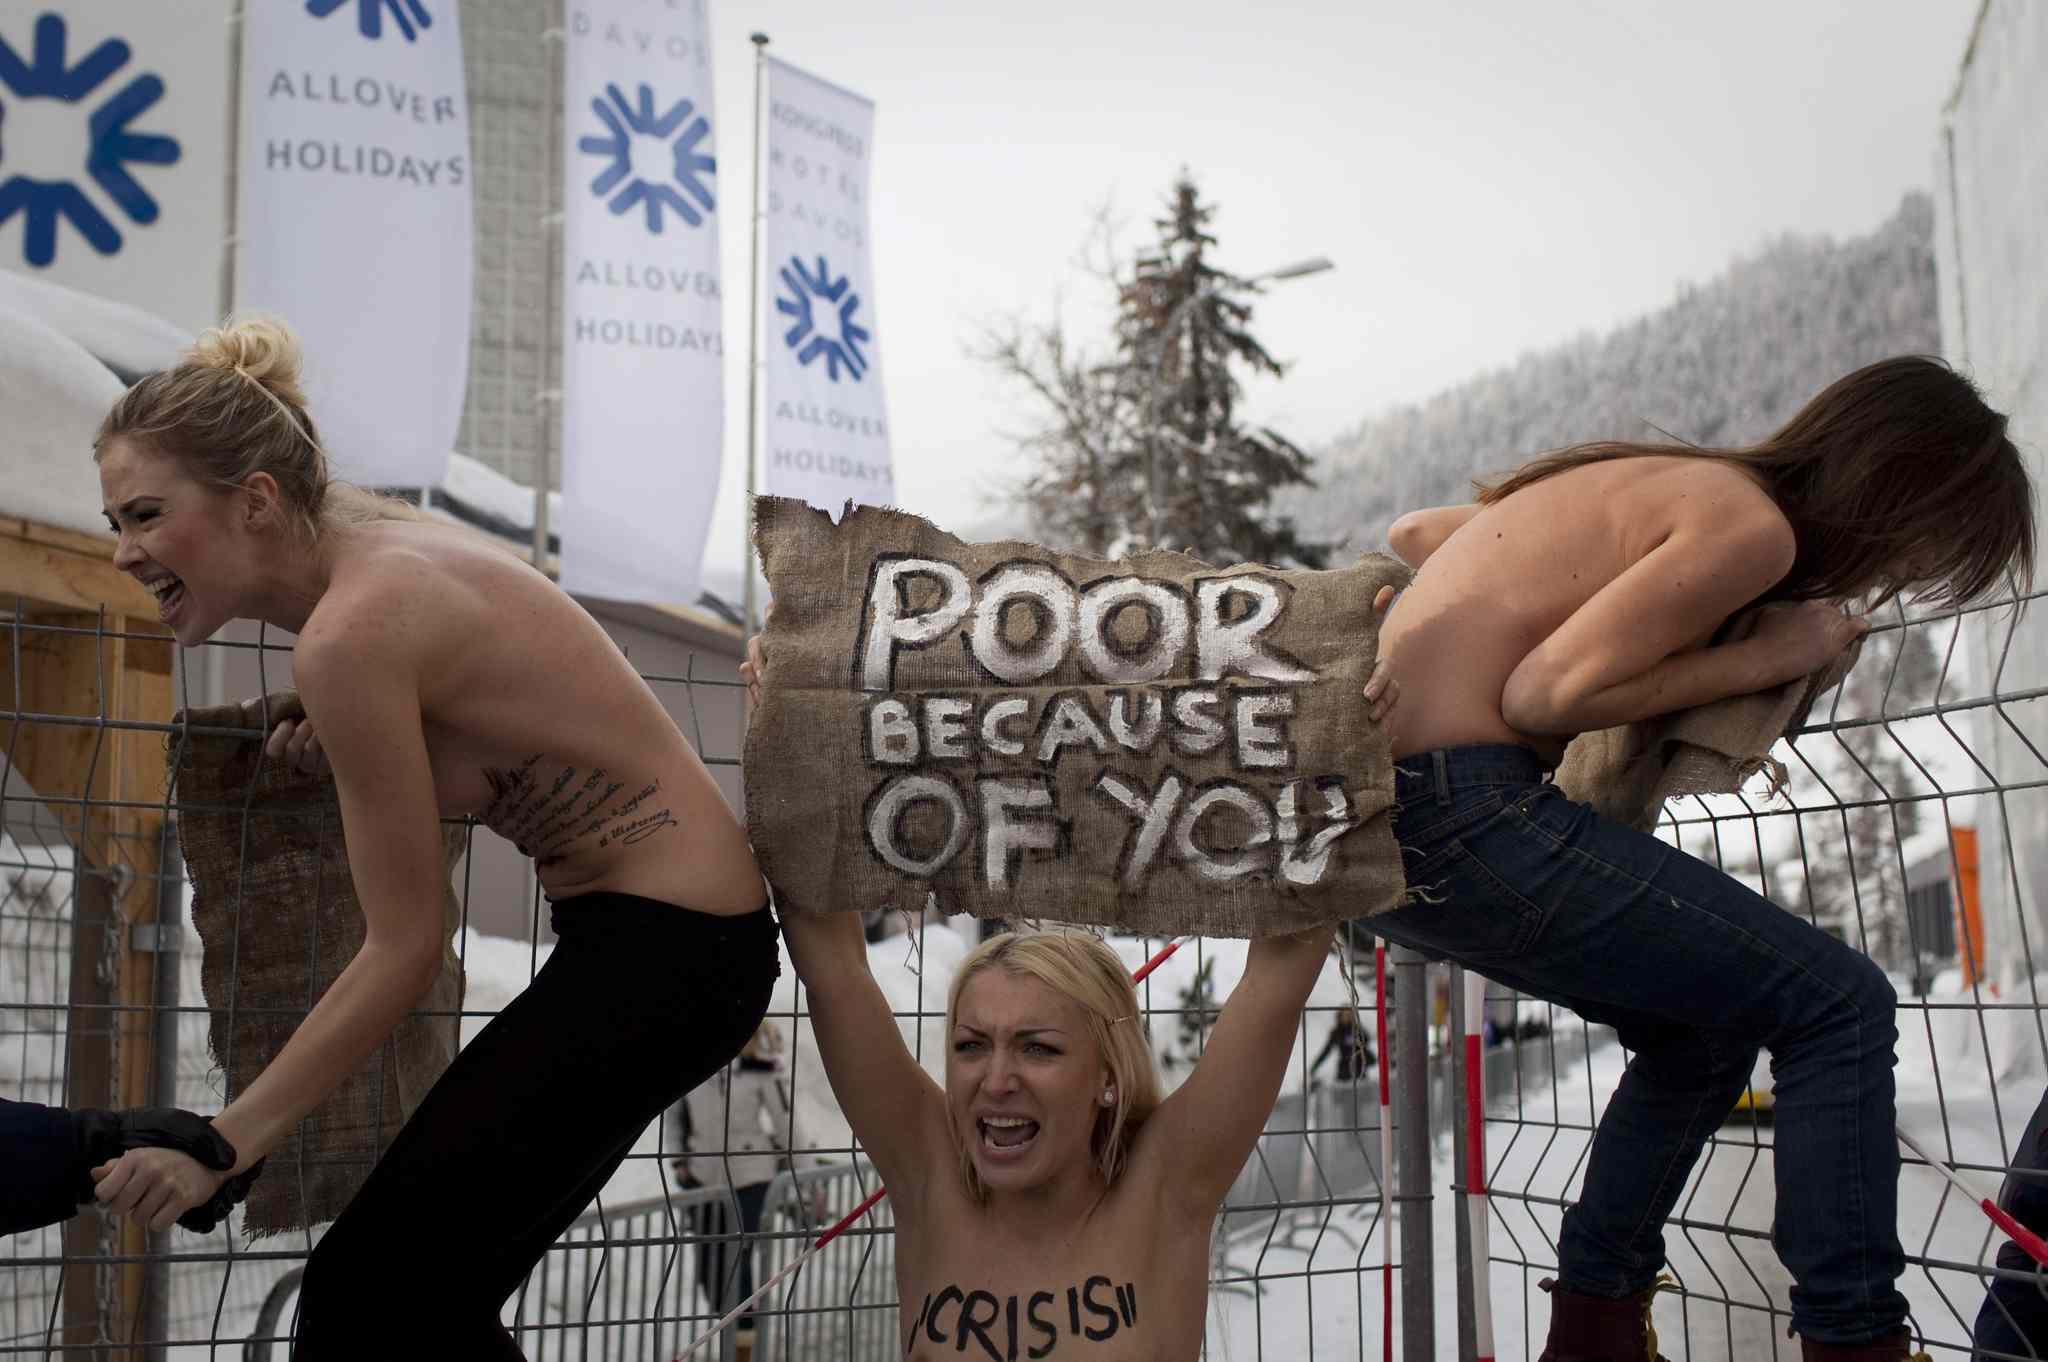 Jan. 28, 2012: Topless Ukrainian protesters climb up a fence at the entrance to the congress center where the World Economic Forum takes place in Davos, Switzerland.